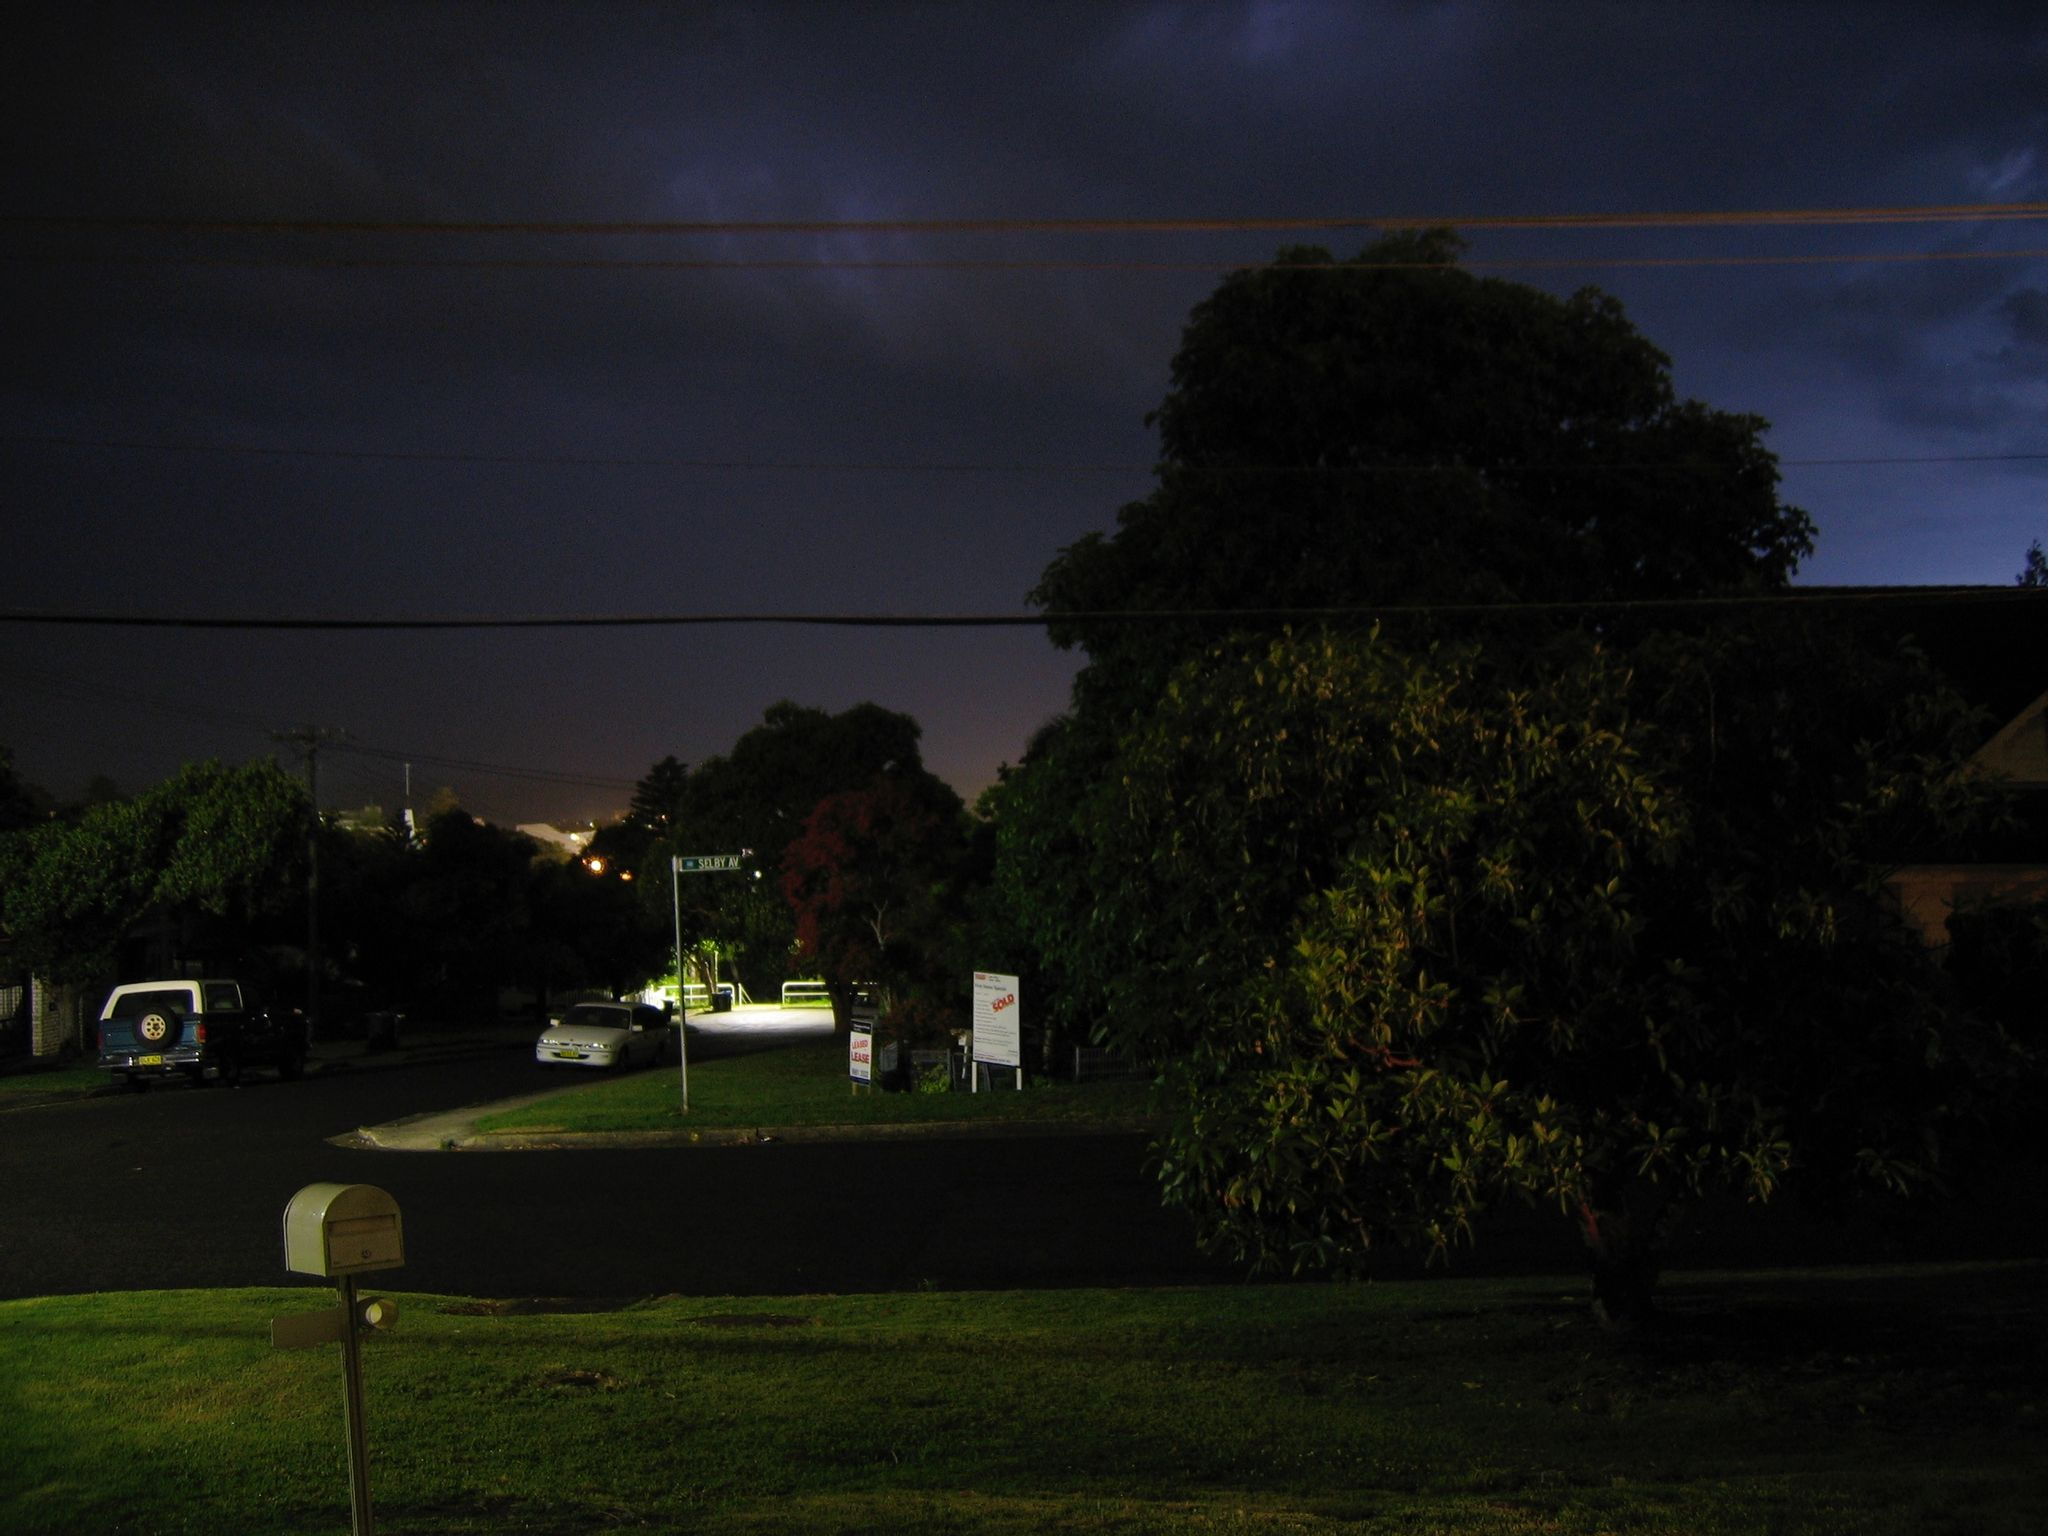 A long-exposure nighttime photo looking at the street corner again, with distant lights visible over the trees at the left, and the clouds at the right being lit up from lightning.